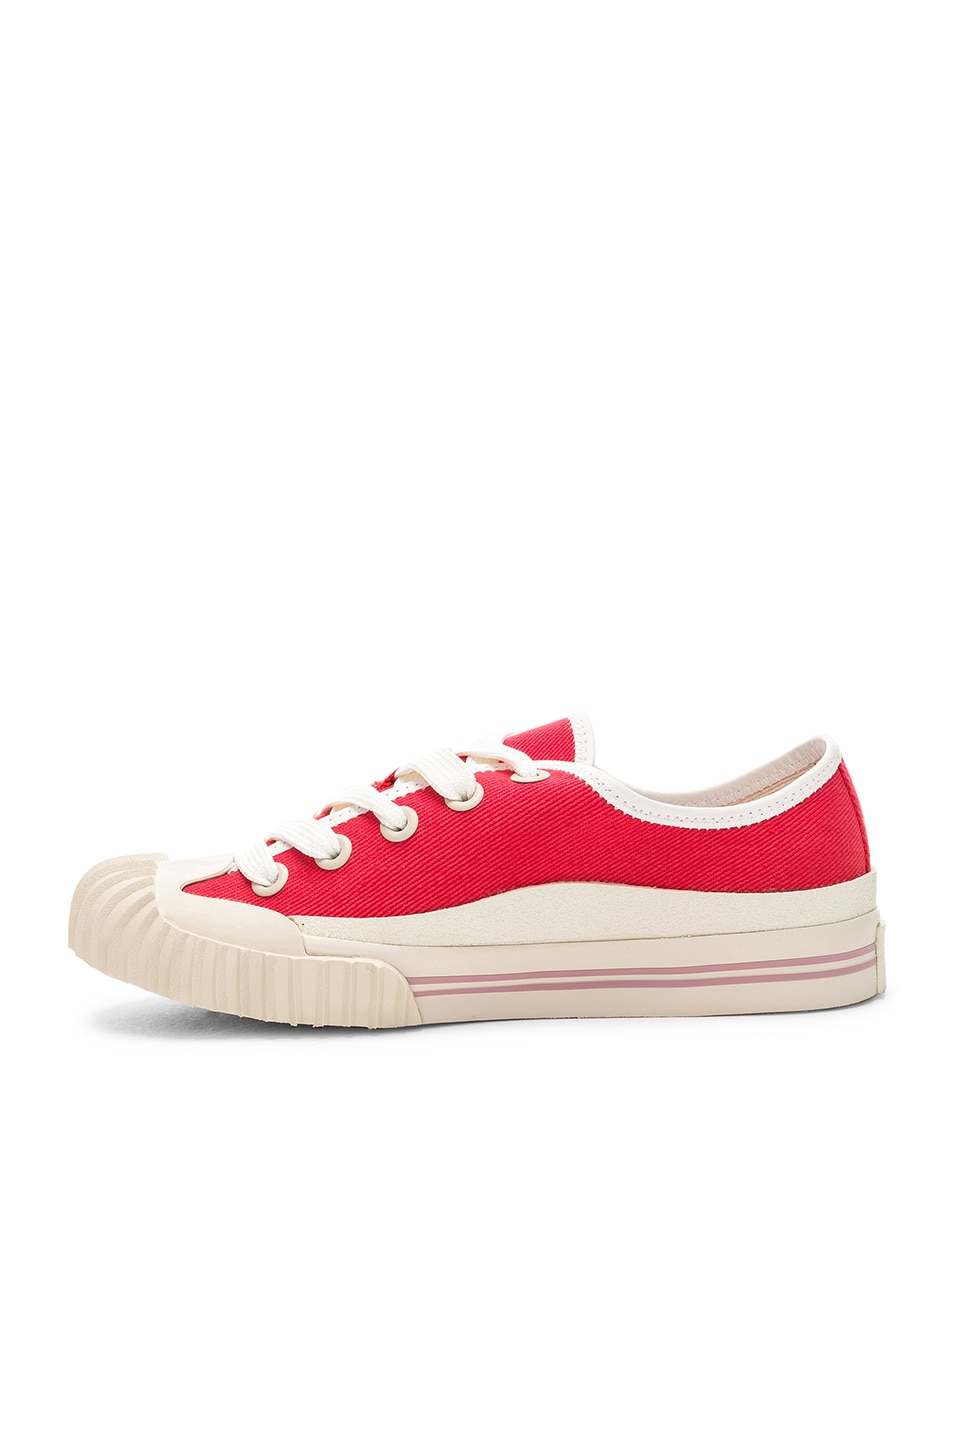 Image 5 of Acne Studios x Bla Konst Sneaker in Coral Red